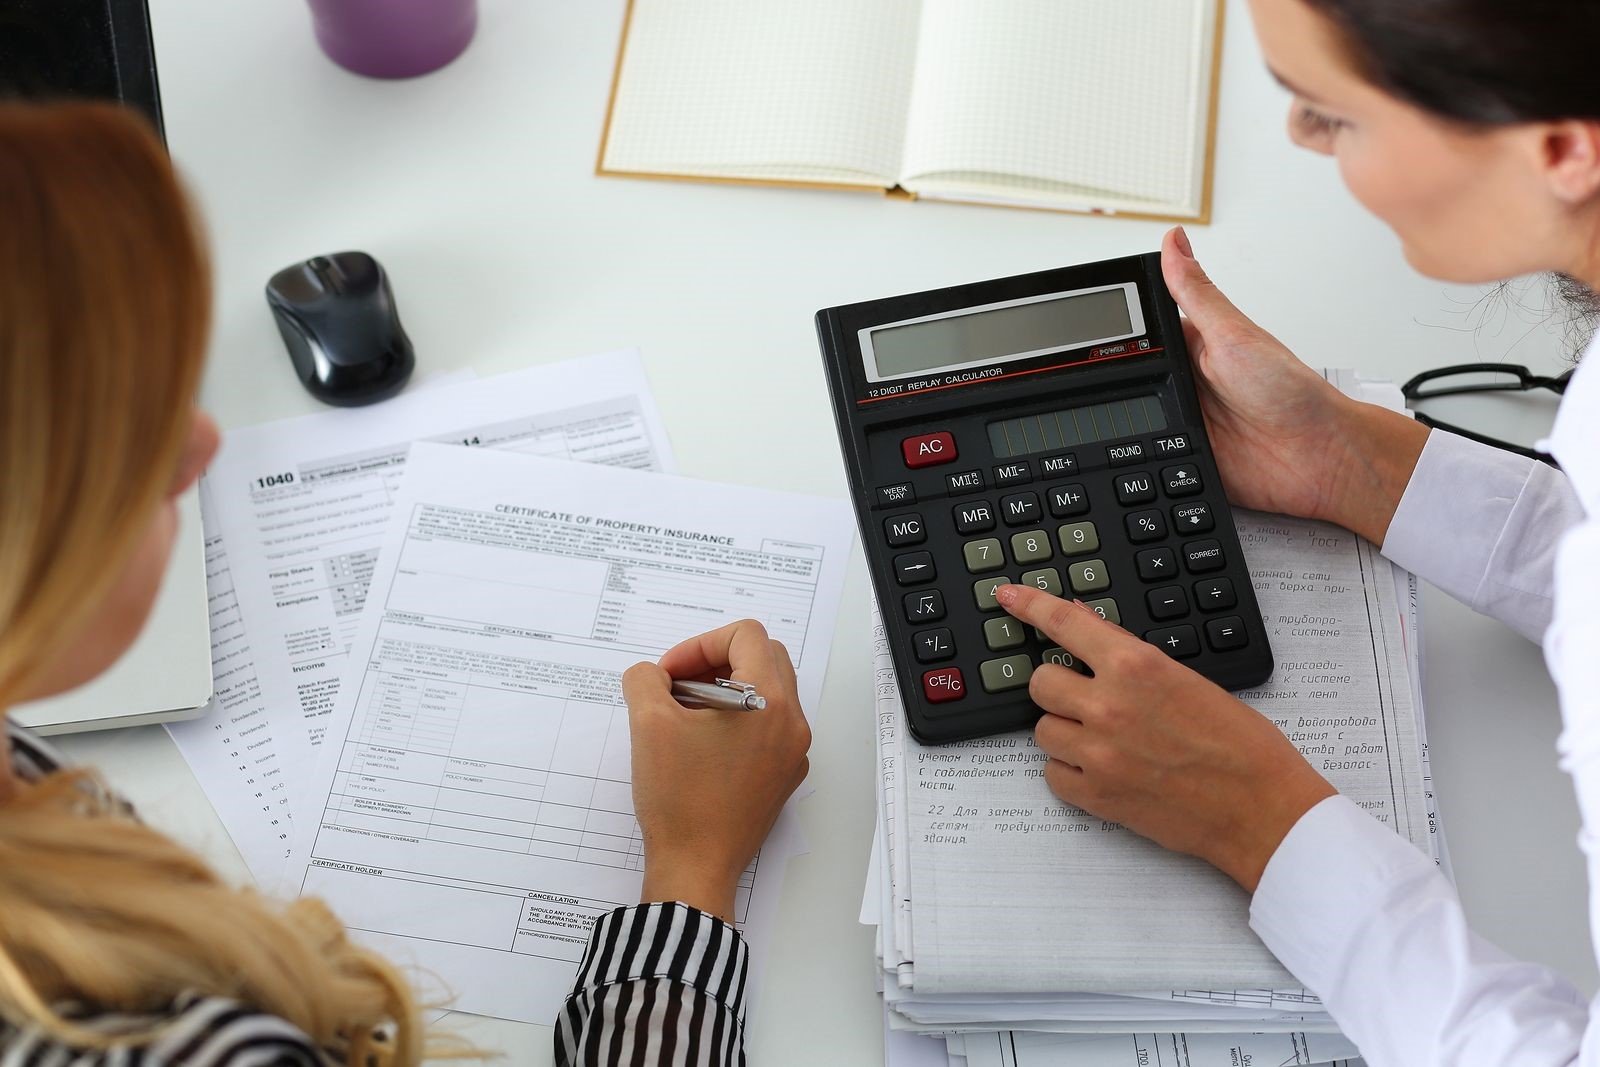 Why You Should Hire a CPA to Help Keep Track of Your Business Finances